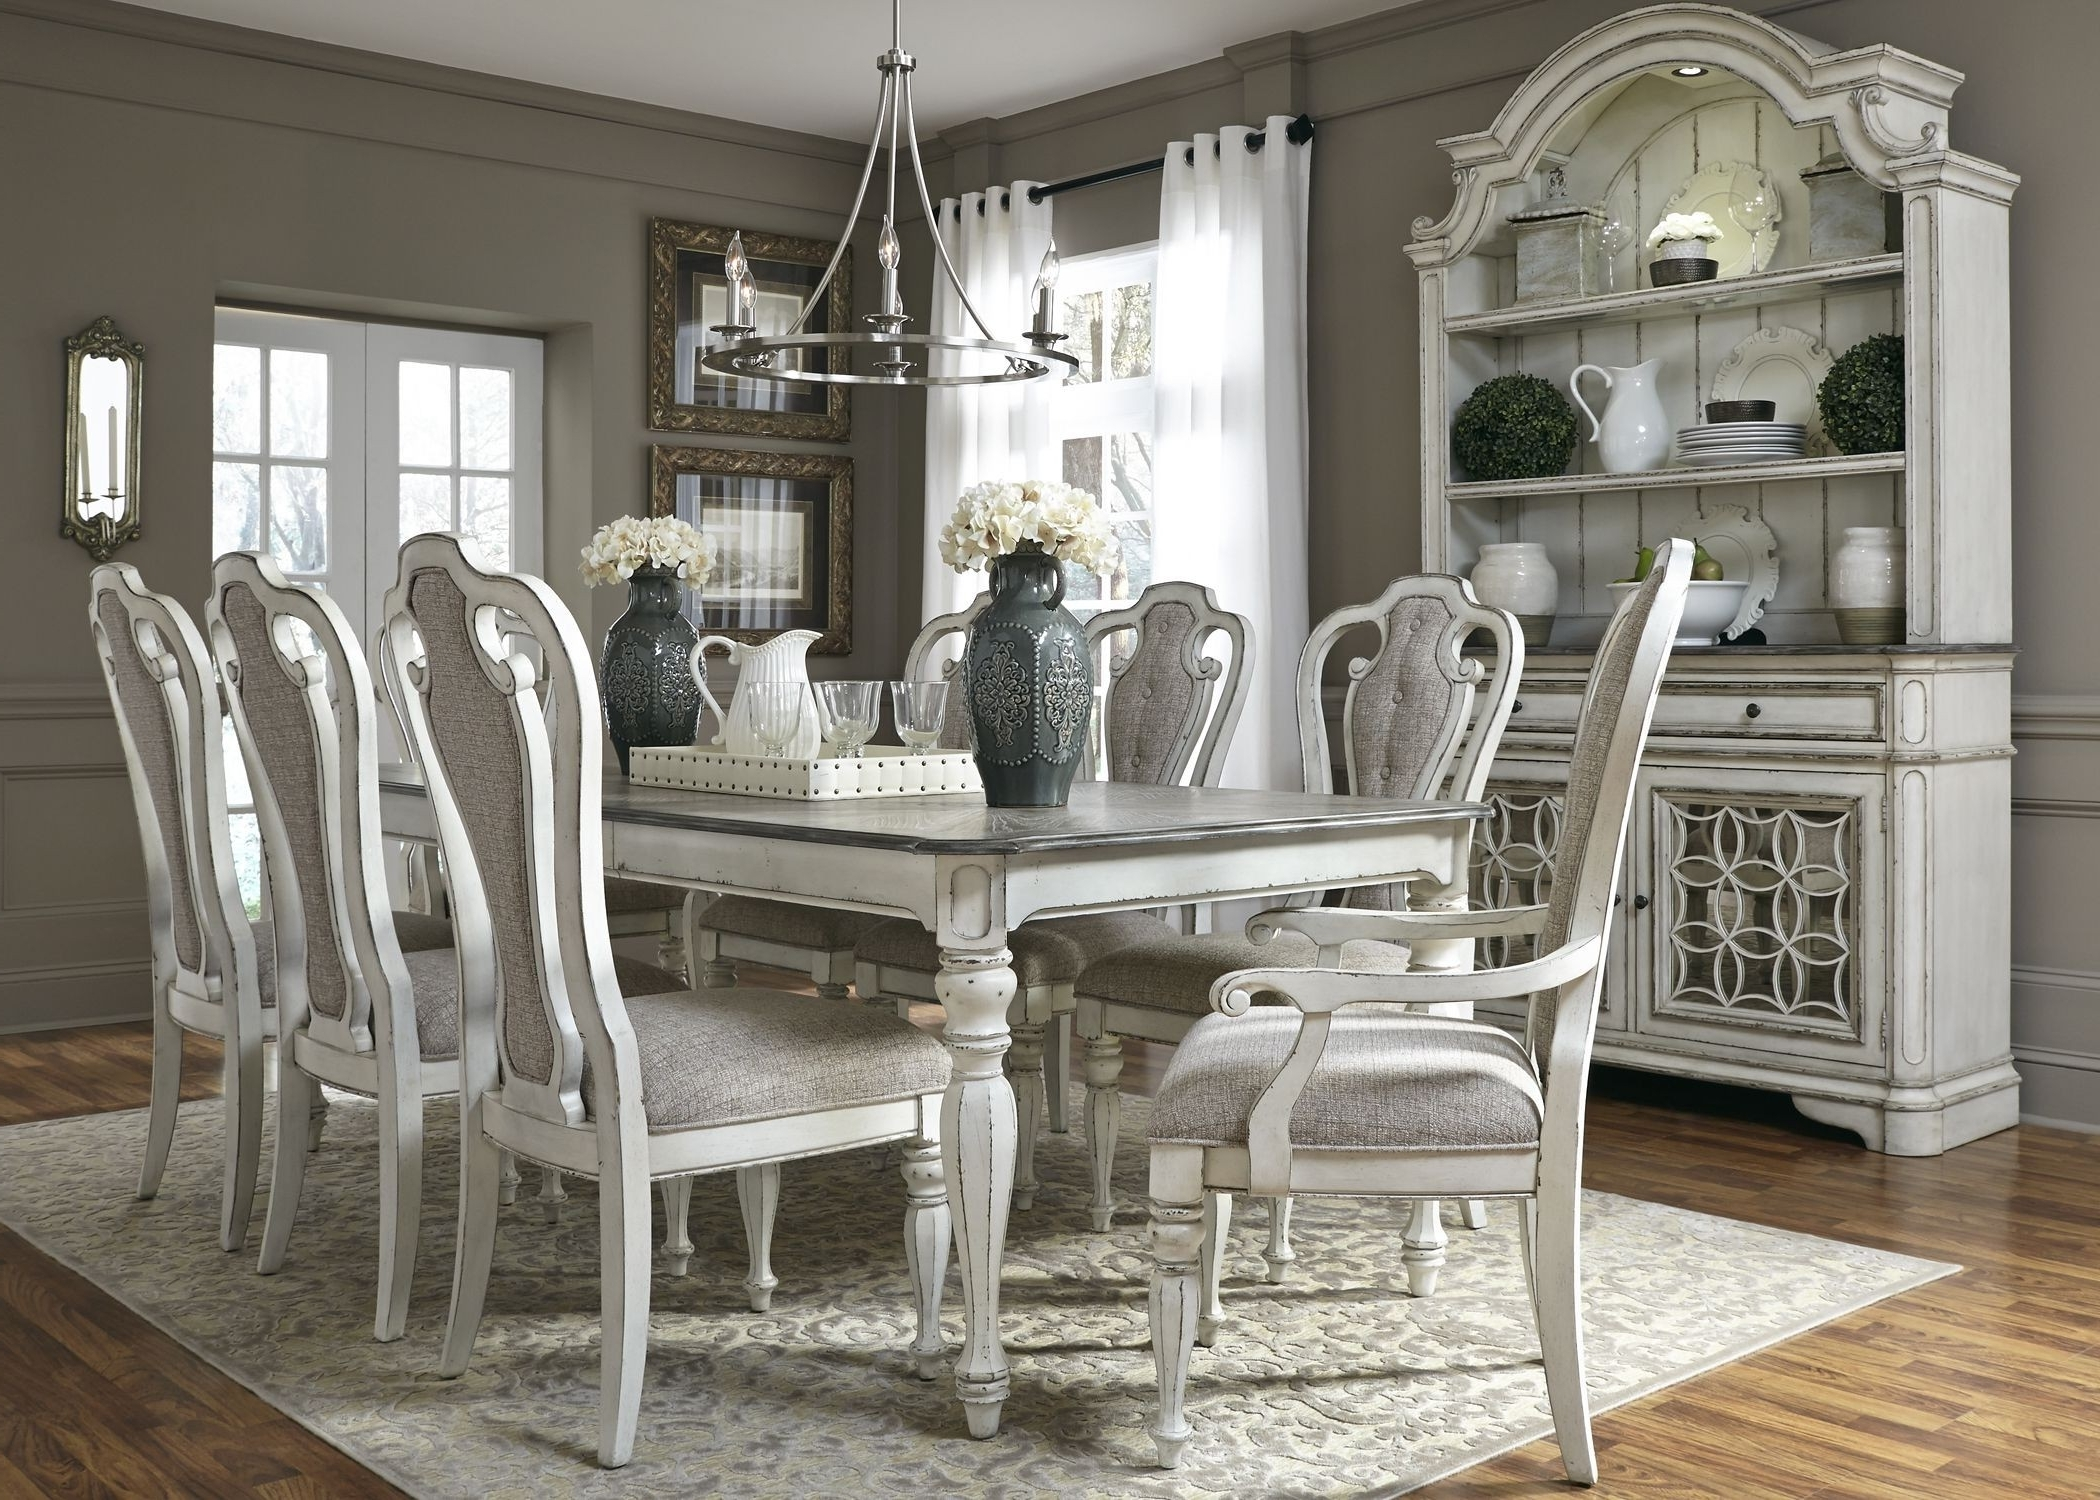 """Magnolia Manor Antique White 108"""" Extendable Rectangular Dining Room Intended For Well Known Magnolia Home Prairie Dining Tables (View 13 of 25)"""